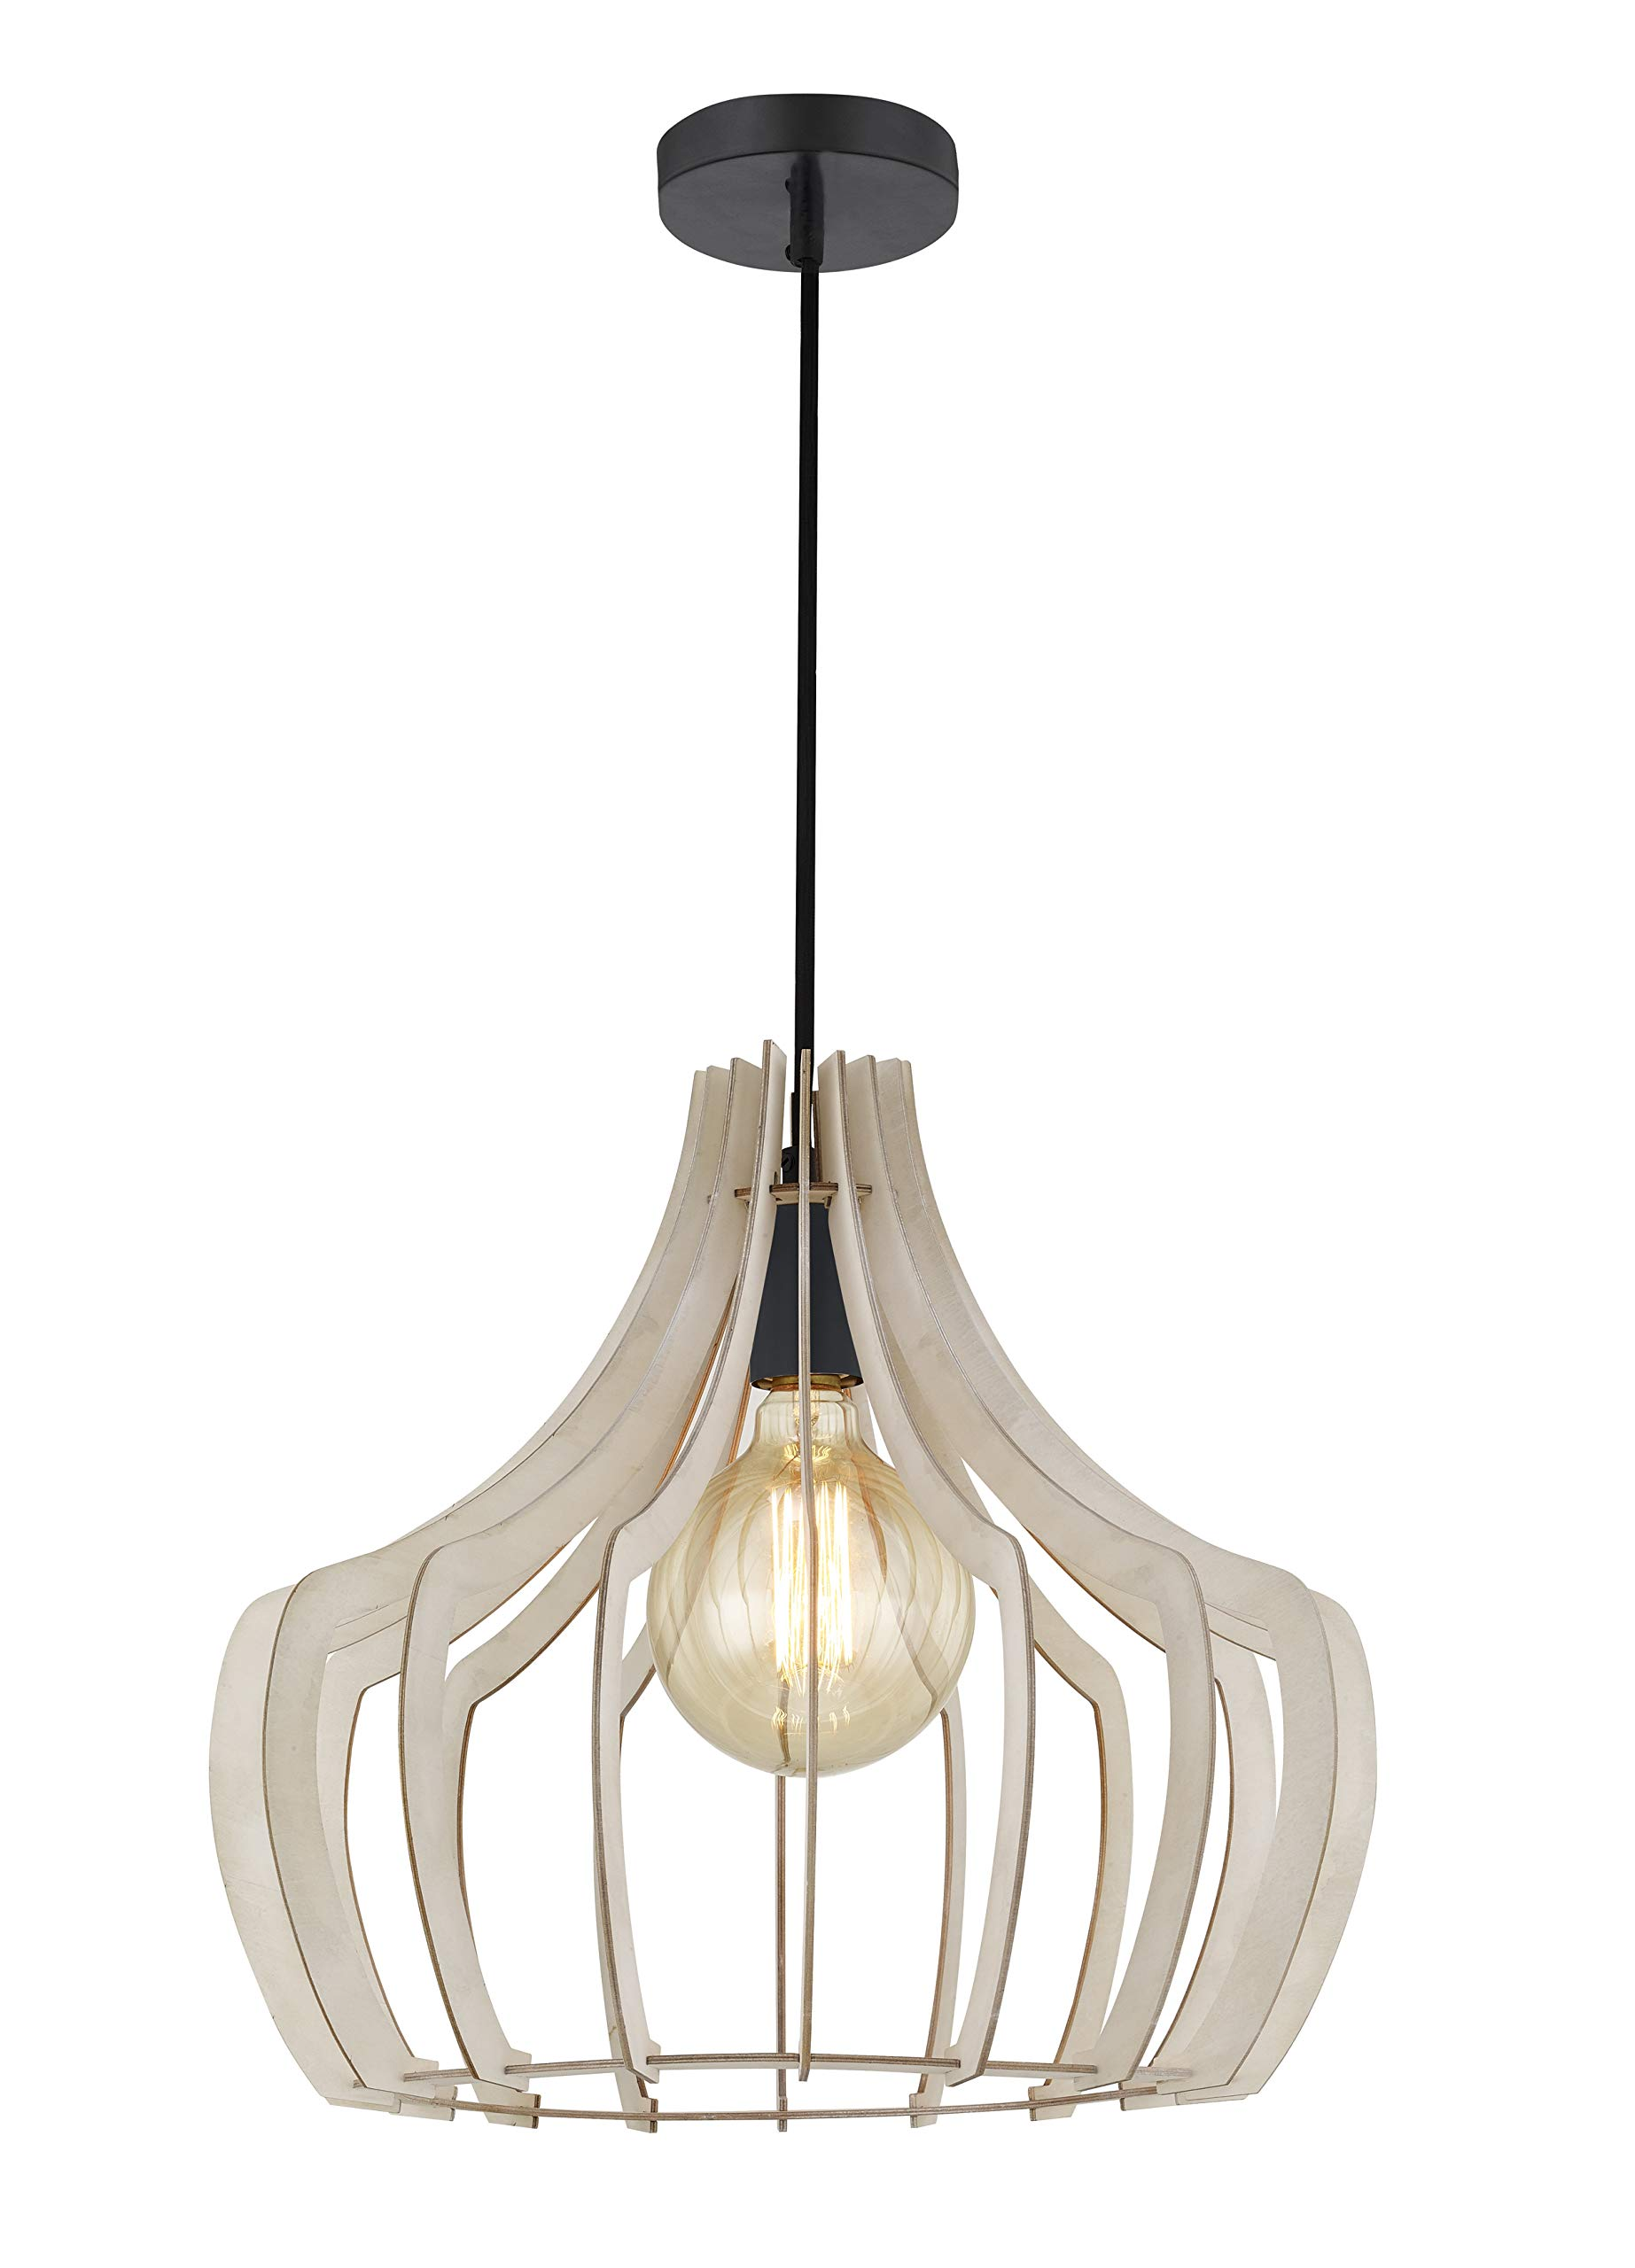 Wooden Hanging Lamp Indoor Wood Pendant Lighting Modern Farmhouse Chandeliers with Cord Ceiling Lamp Light Fixture for Dining Room,Kitchen, Bedrooms(White)